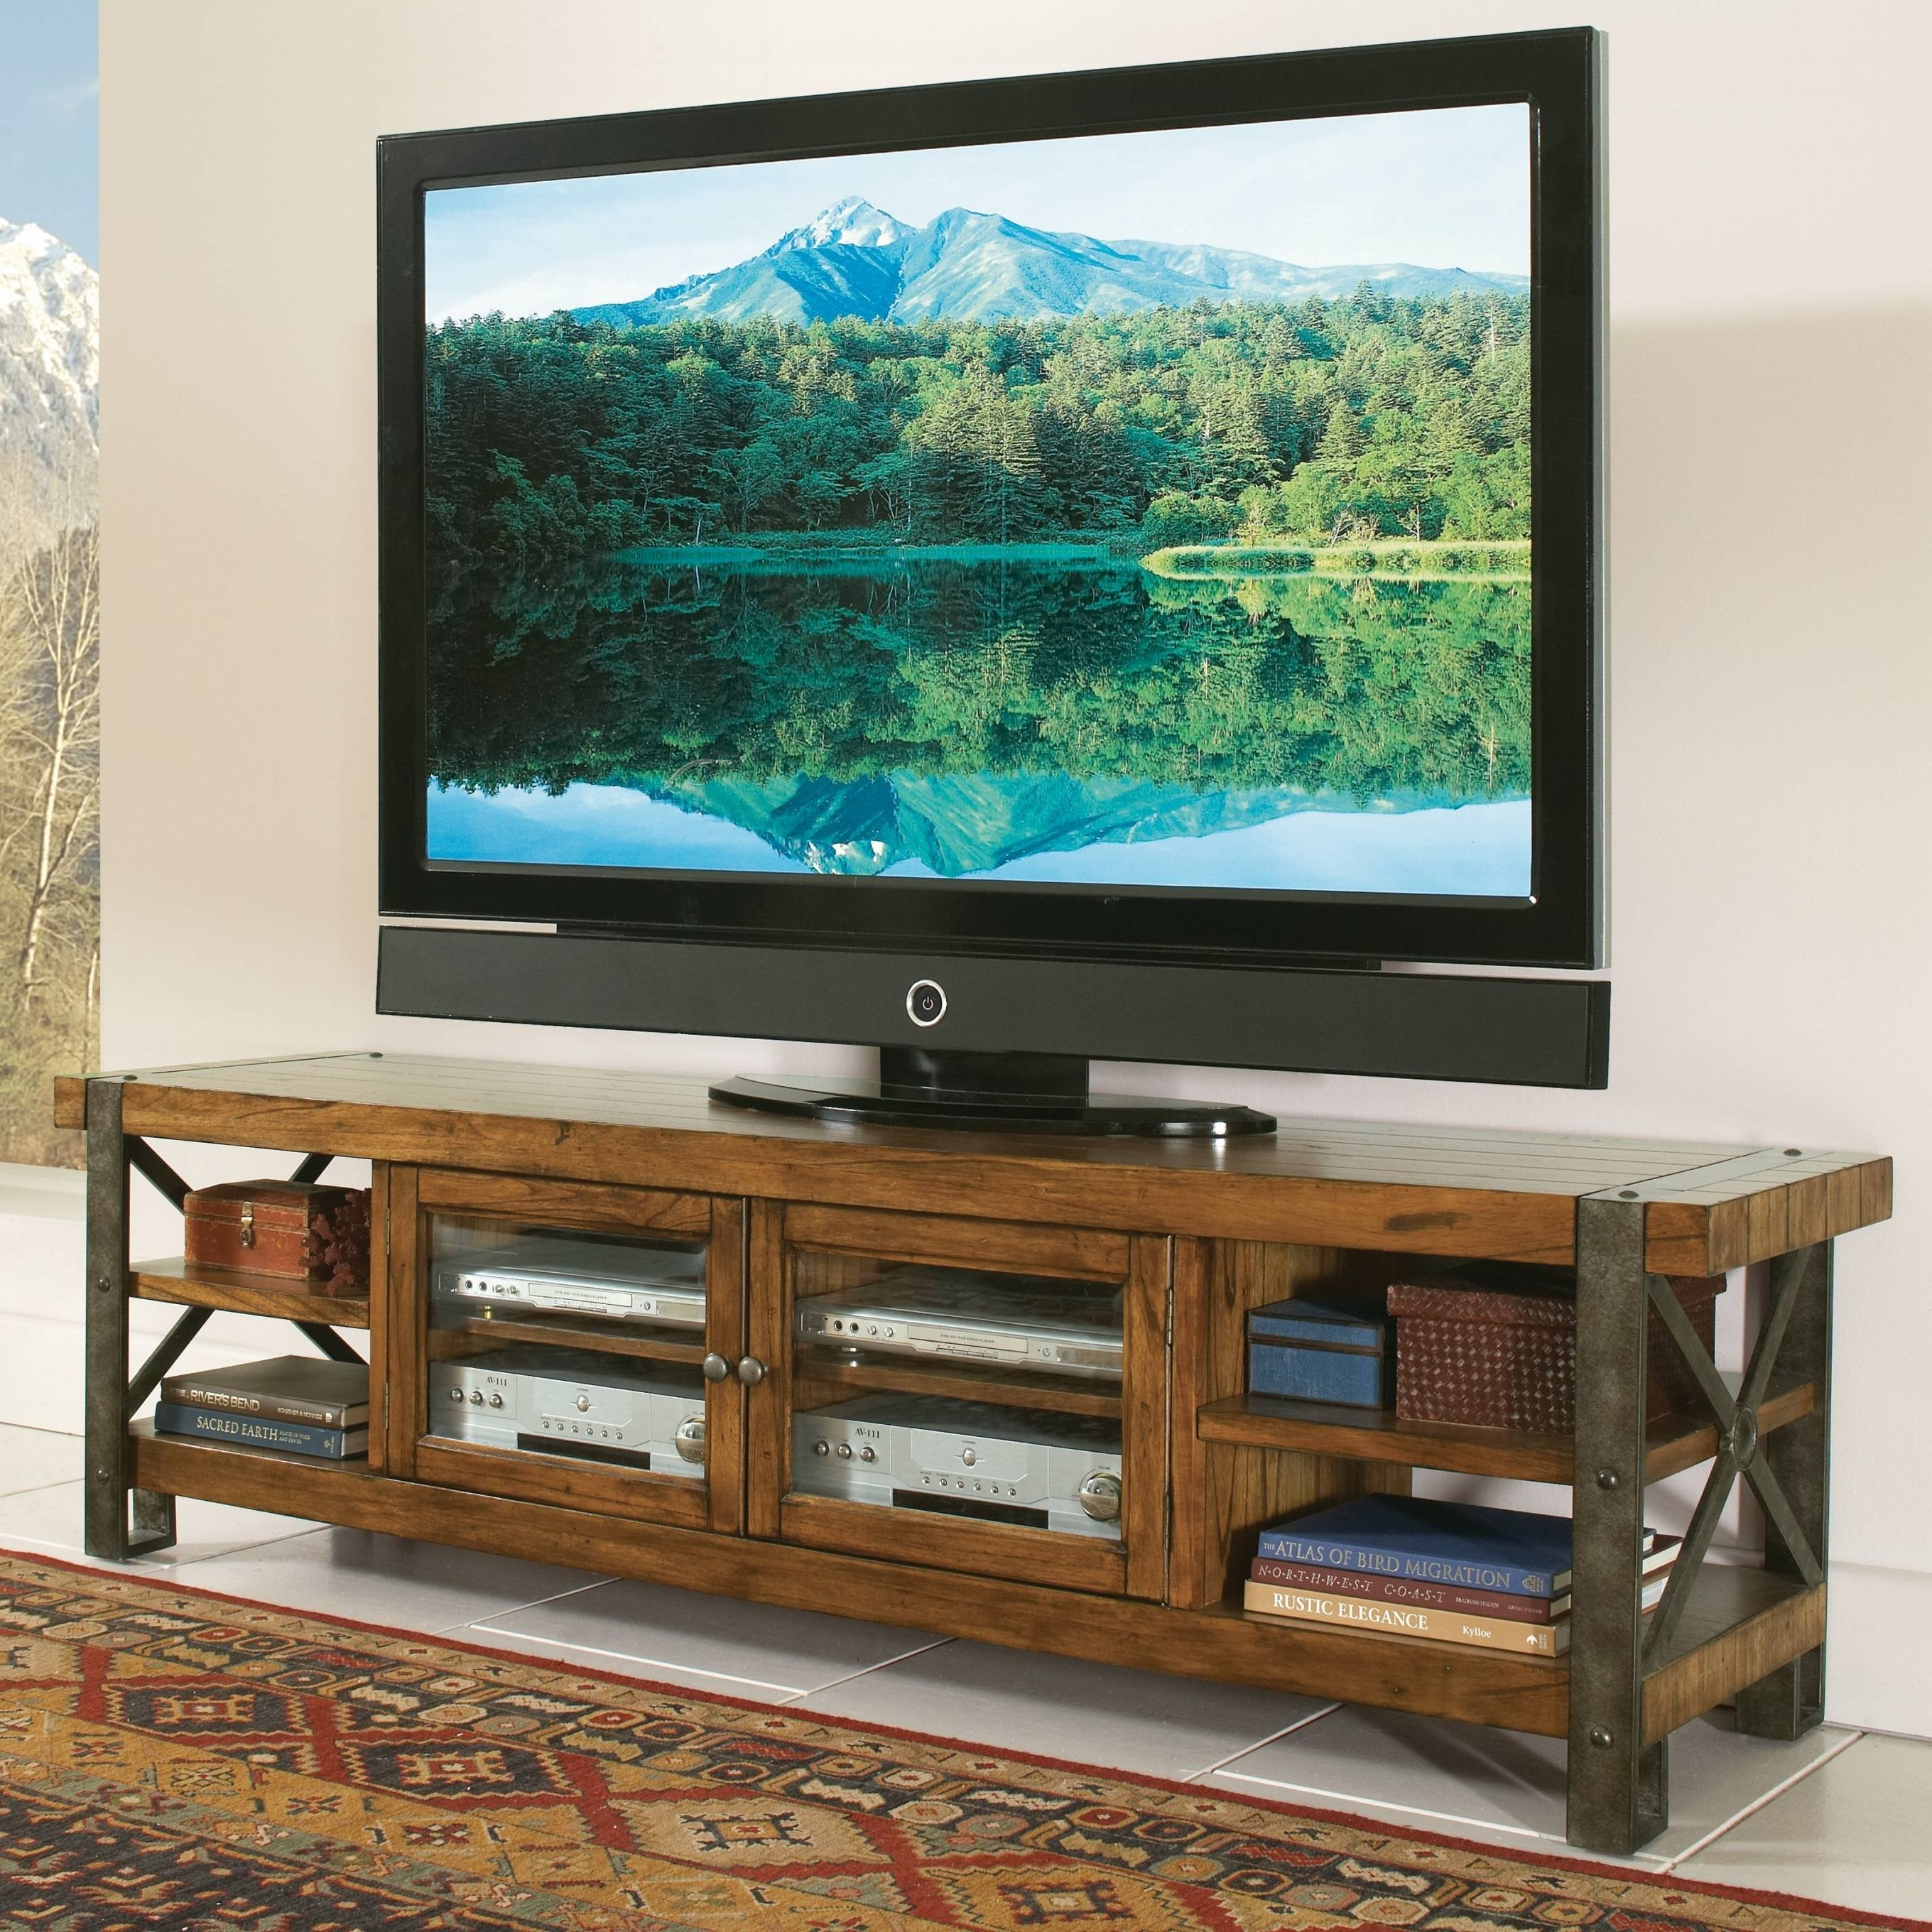 Luxury 70 Inch Tv Stands Inspirational | Vgmnation intended for Luxury Tv Stands (Image 8 of 15)